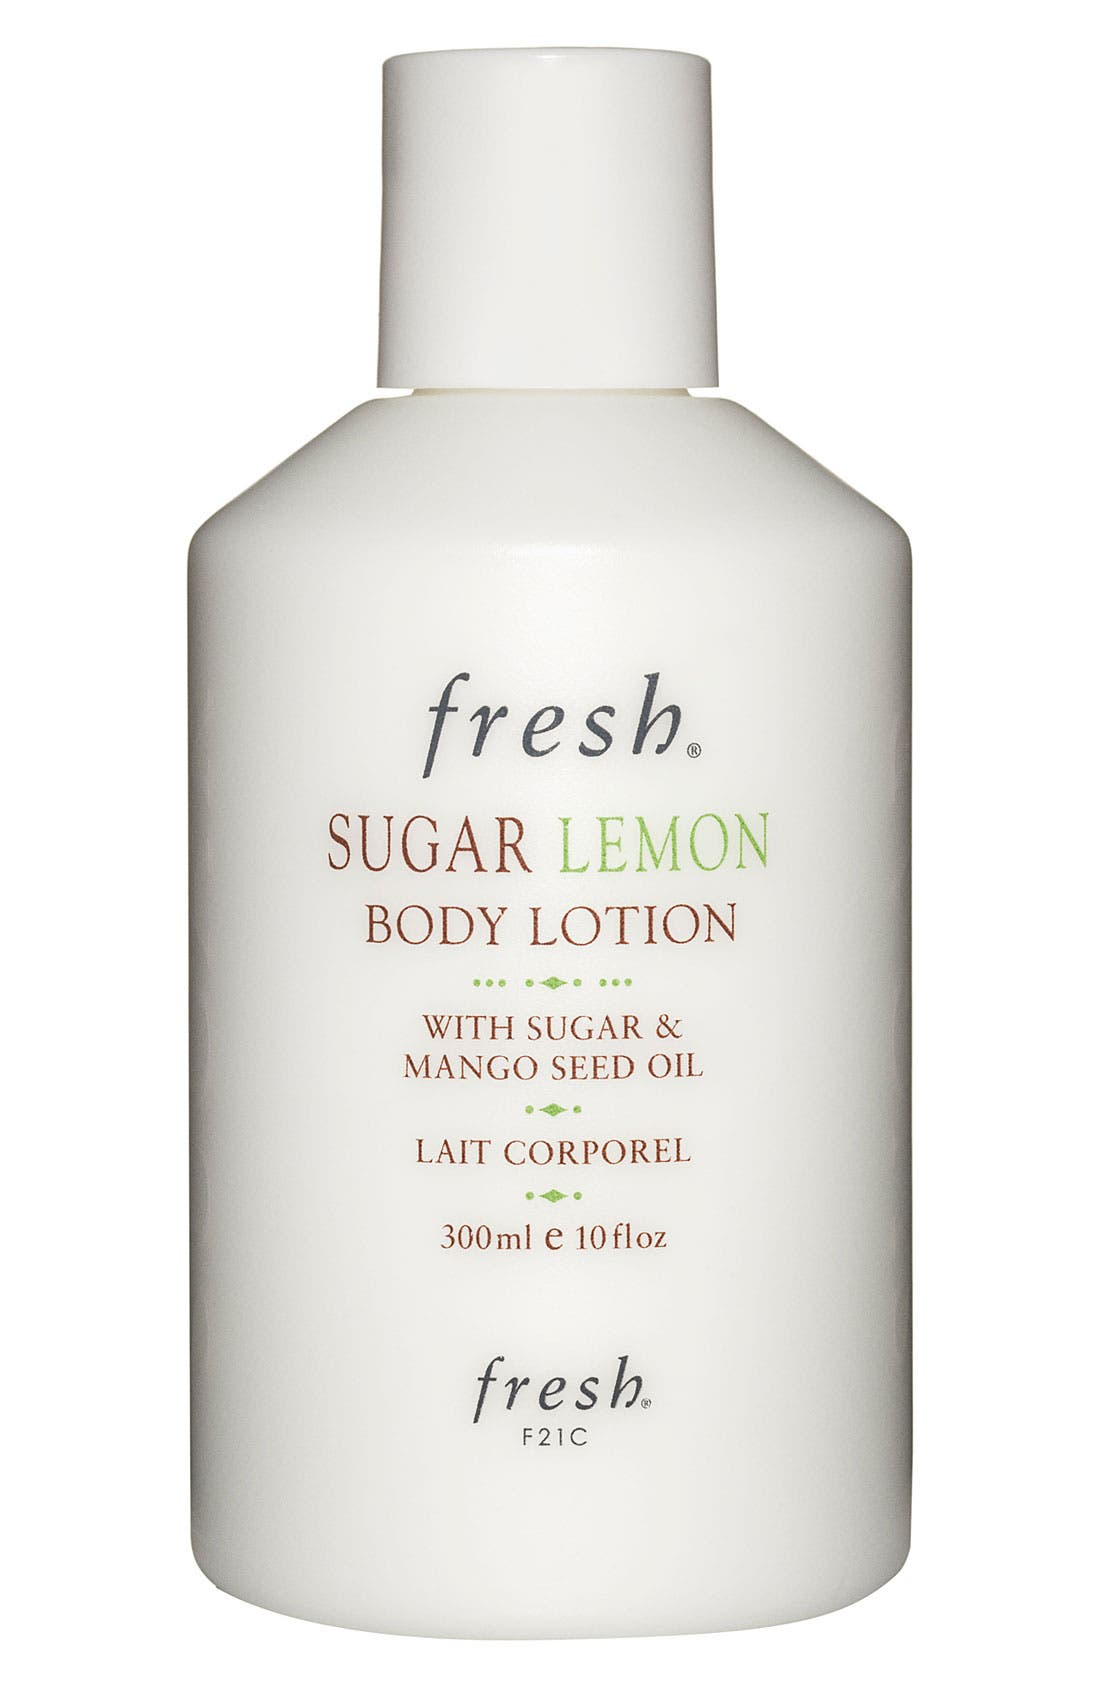 Fresh® Sugar Lemon Body Lotion